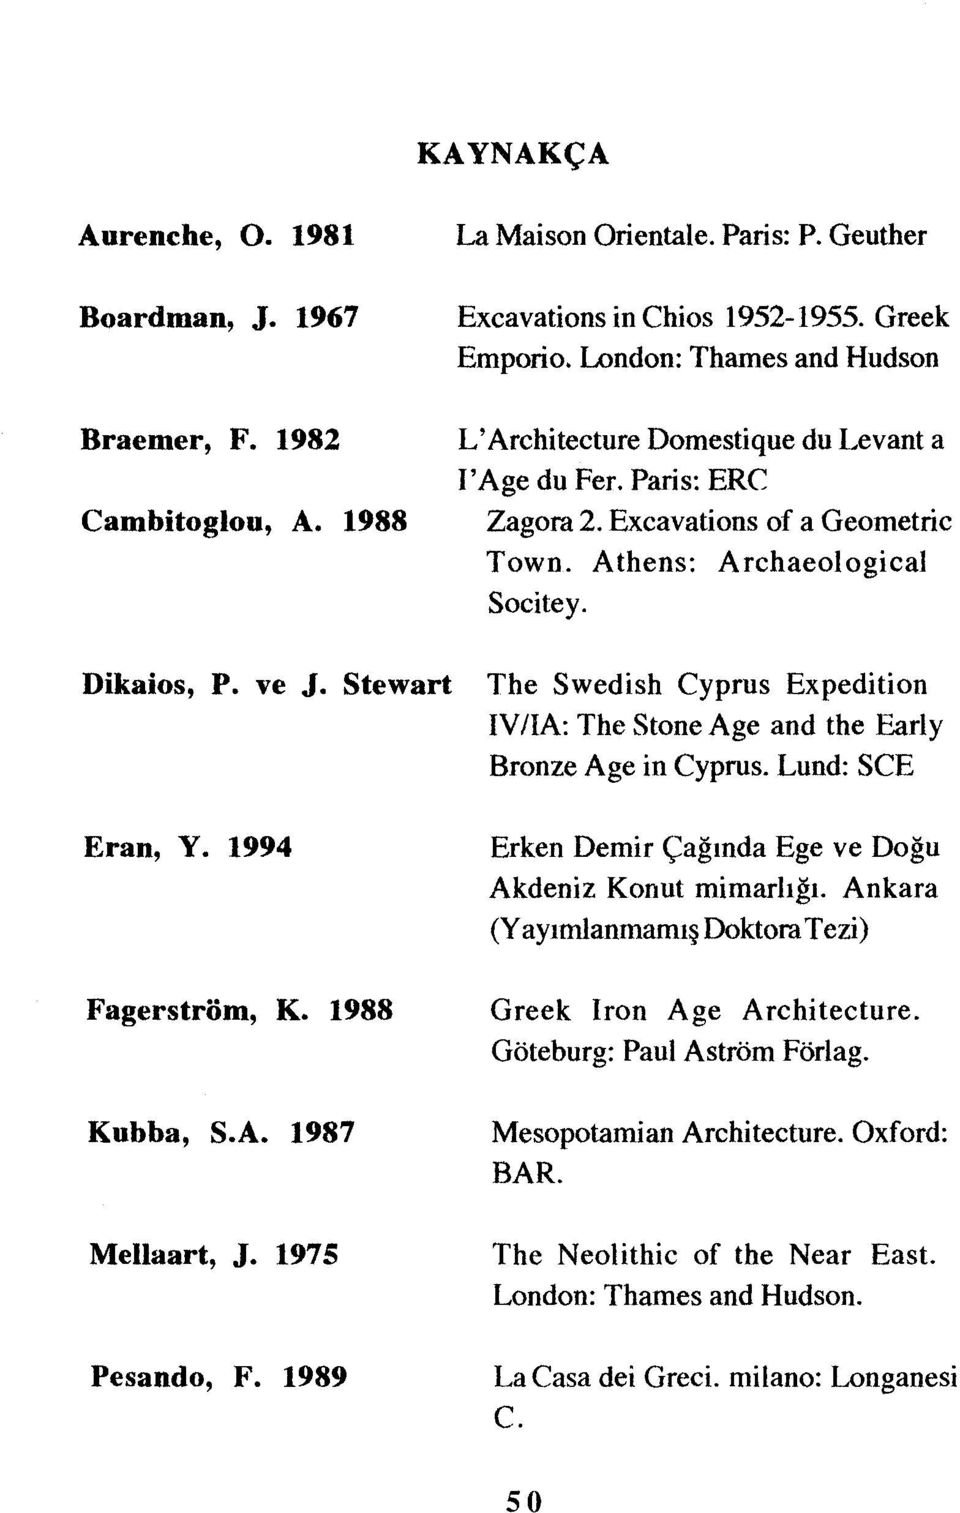 1994 Fagerström, K. 1988 Kubba, S.A. 1987 Mellaart, J. 1975 The Swedish Cyprus Expedition LVIlA: The Stone Age and the Early Bronze Age in Cyprus.